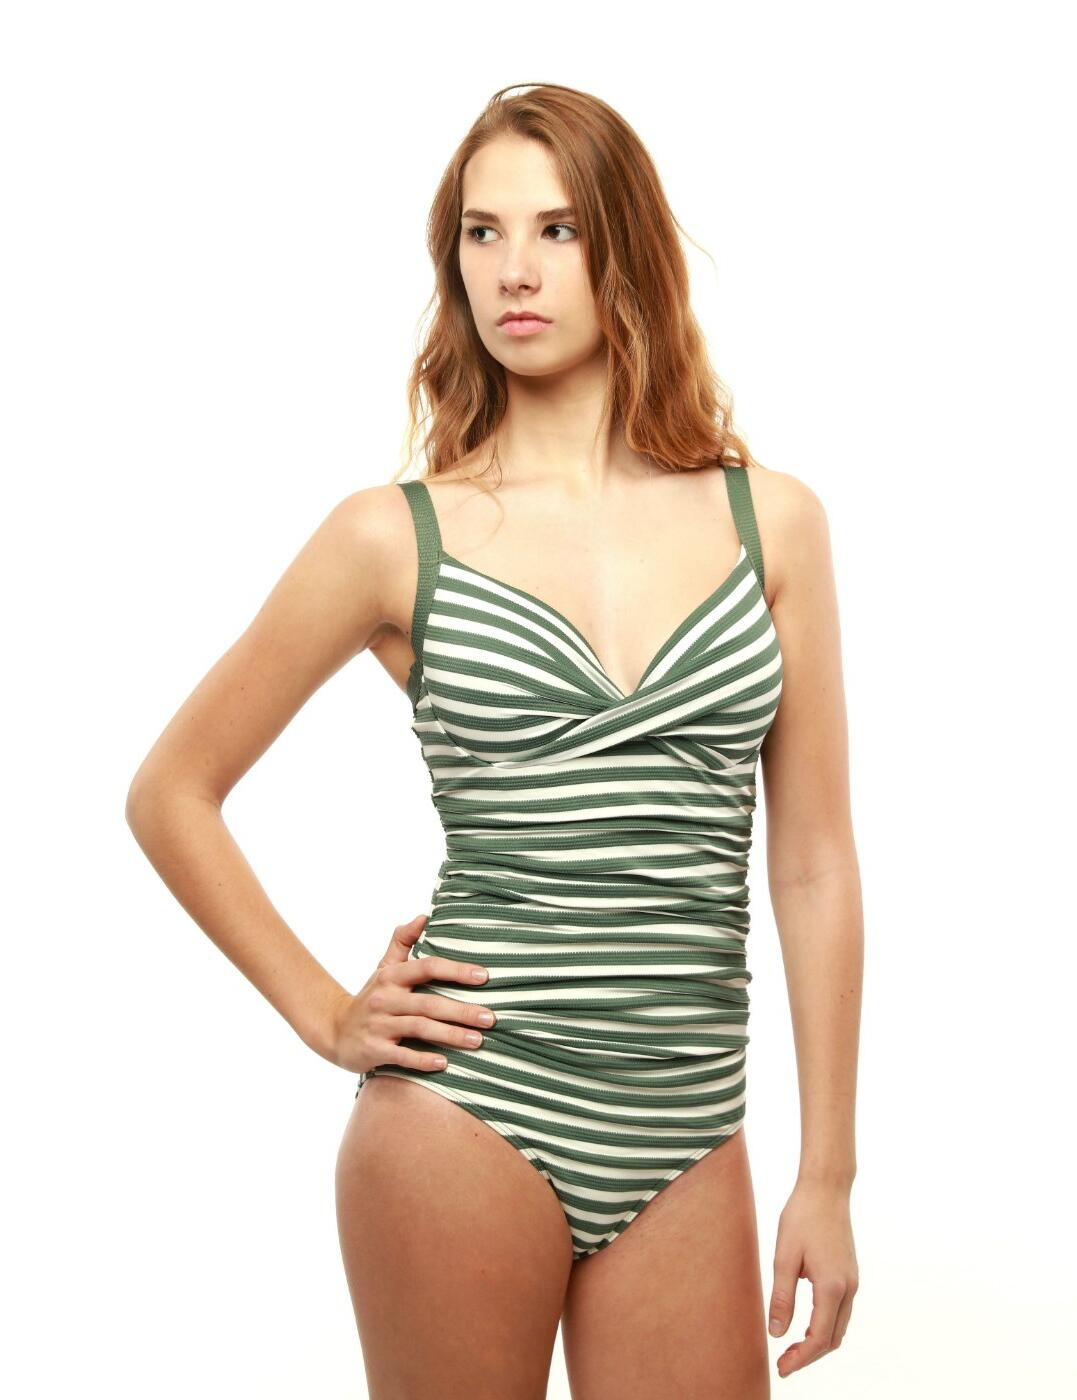 M4023AB Moontide Above Board Wrap Underwired Swimsuit - M4023AB Olive